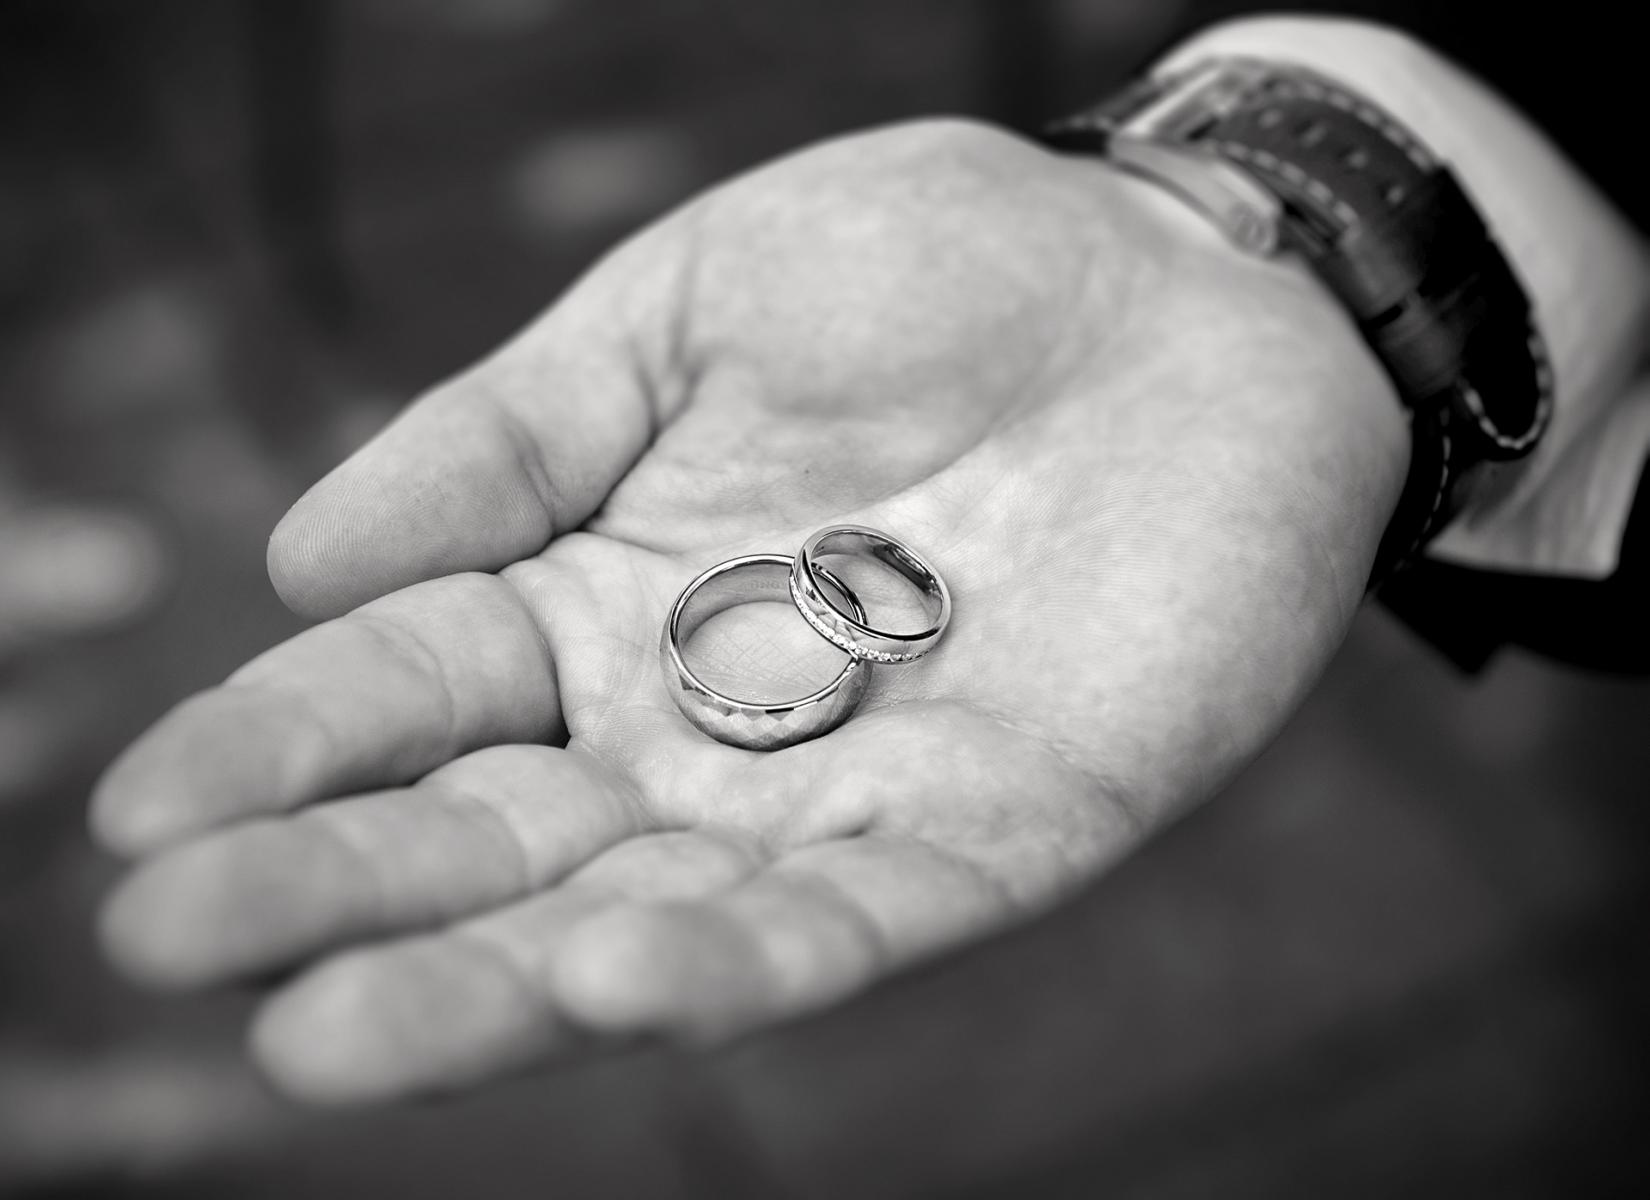 wedding-rings-grooms-hand-cwmbran-wedding-photography-black-and-white-wedding-photography